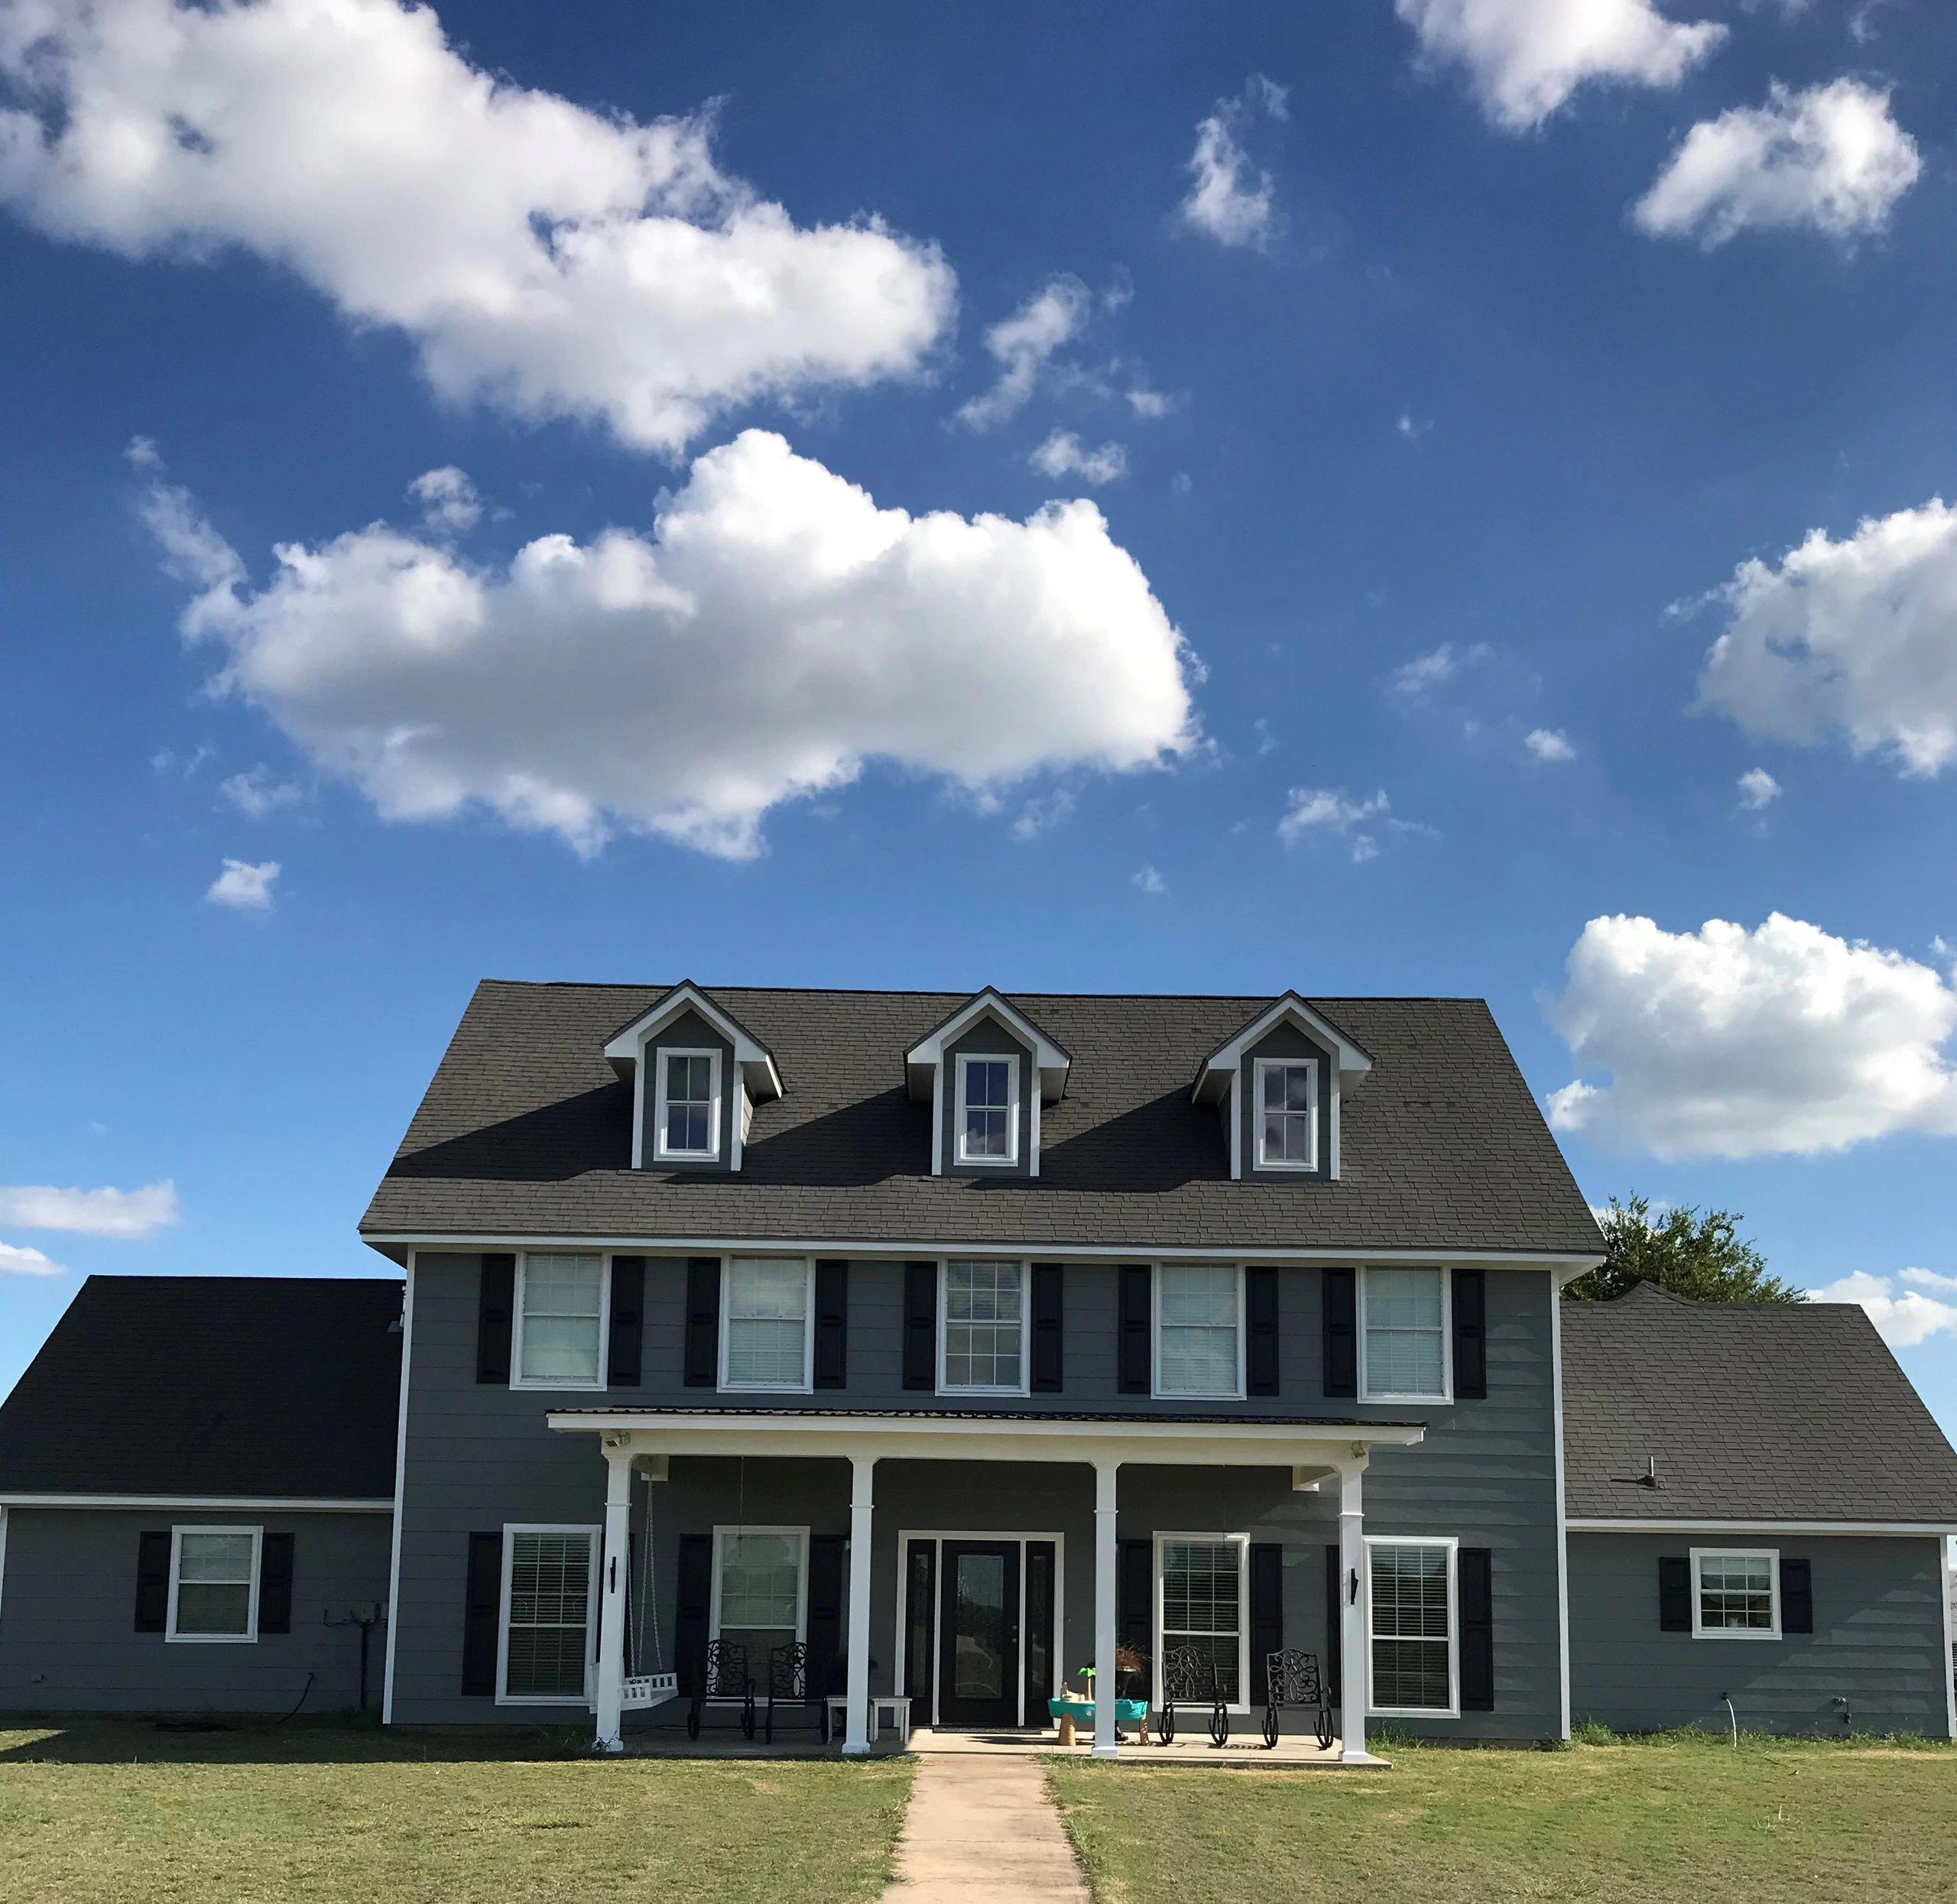 Bed And Breakfast Hotels Farmhouse Bed And Breakfast Waco Texas